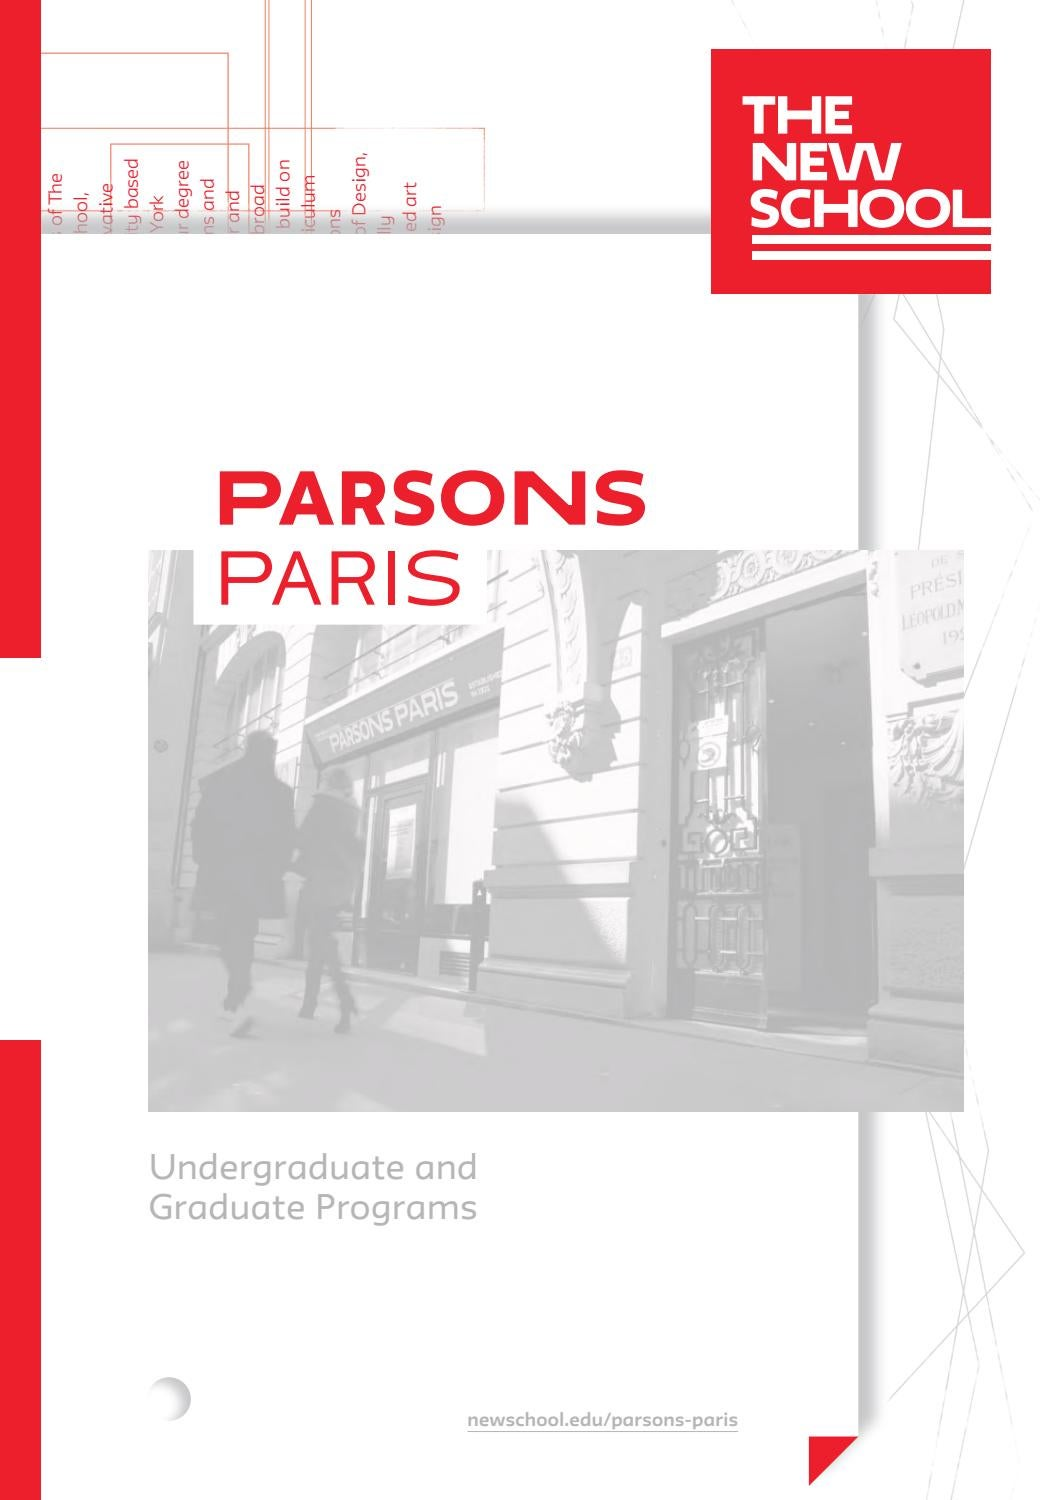 2019 Parsons Paris Viewbook By The New School Issuu